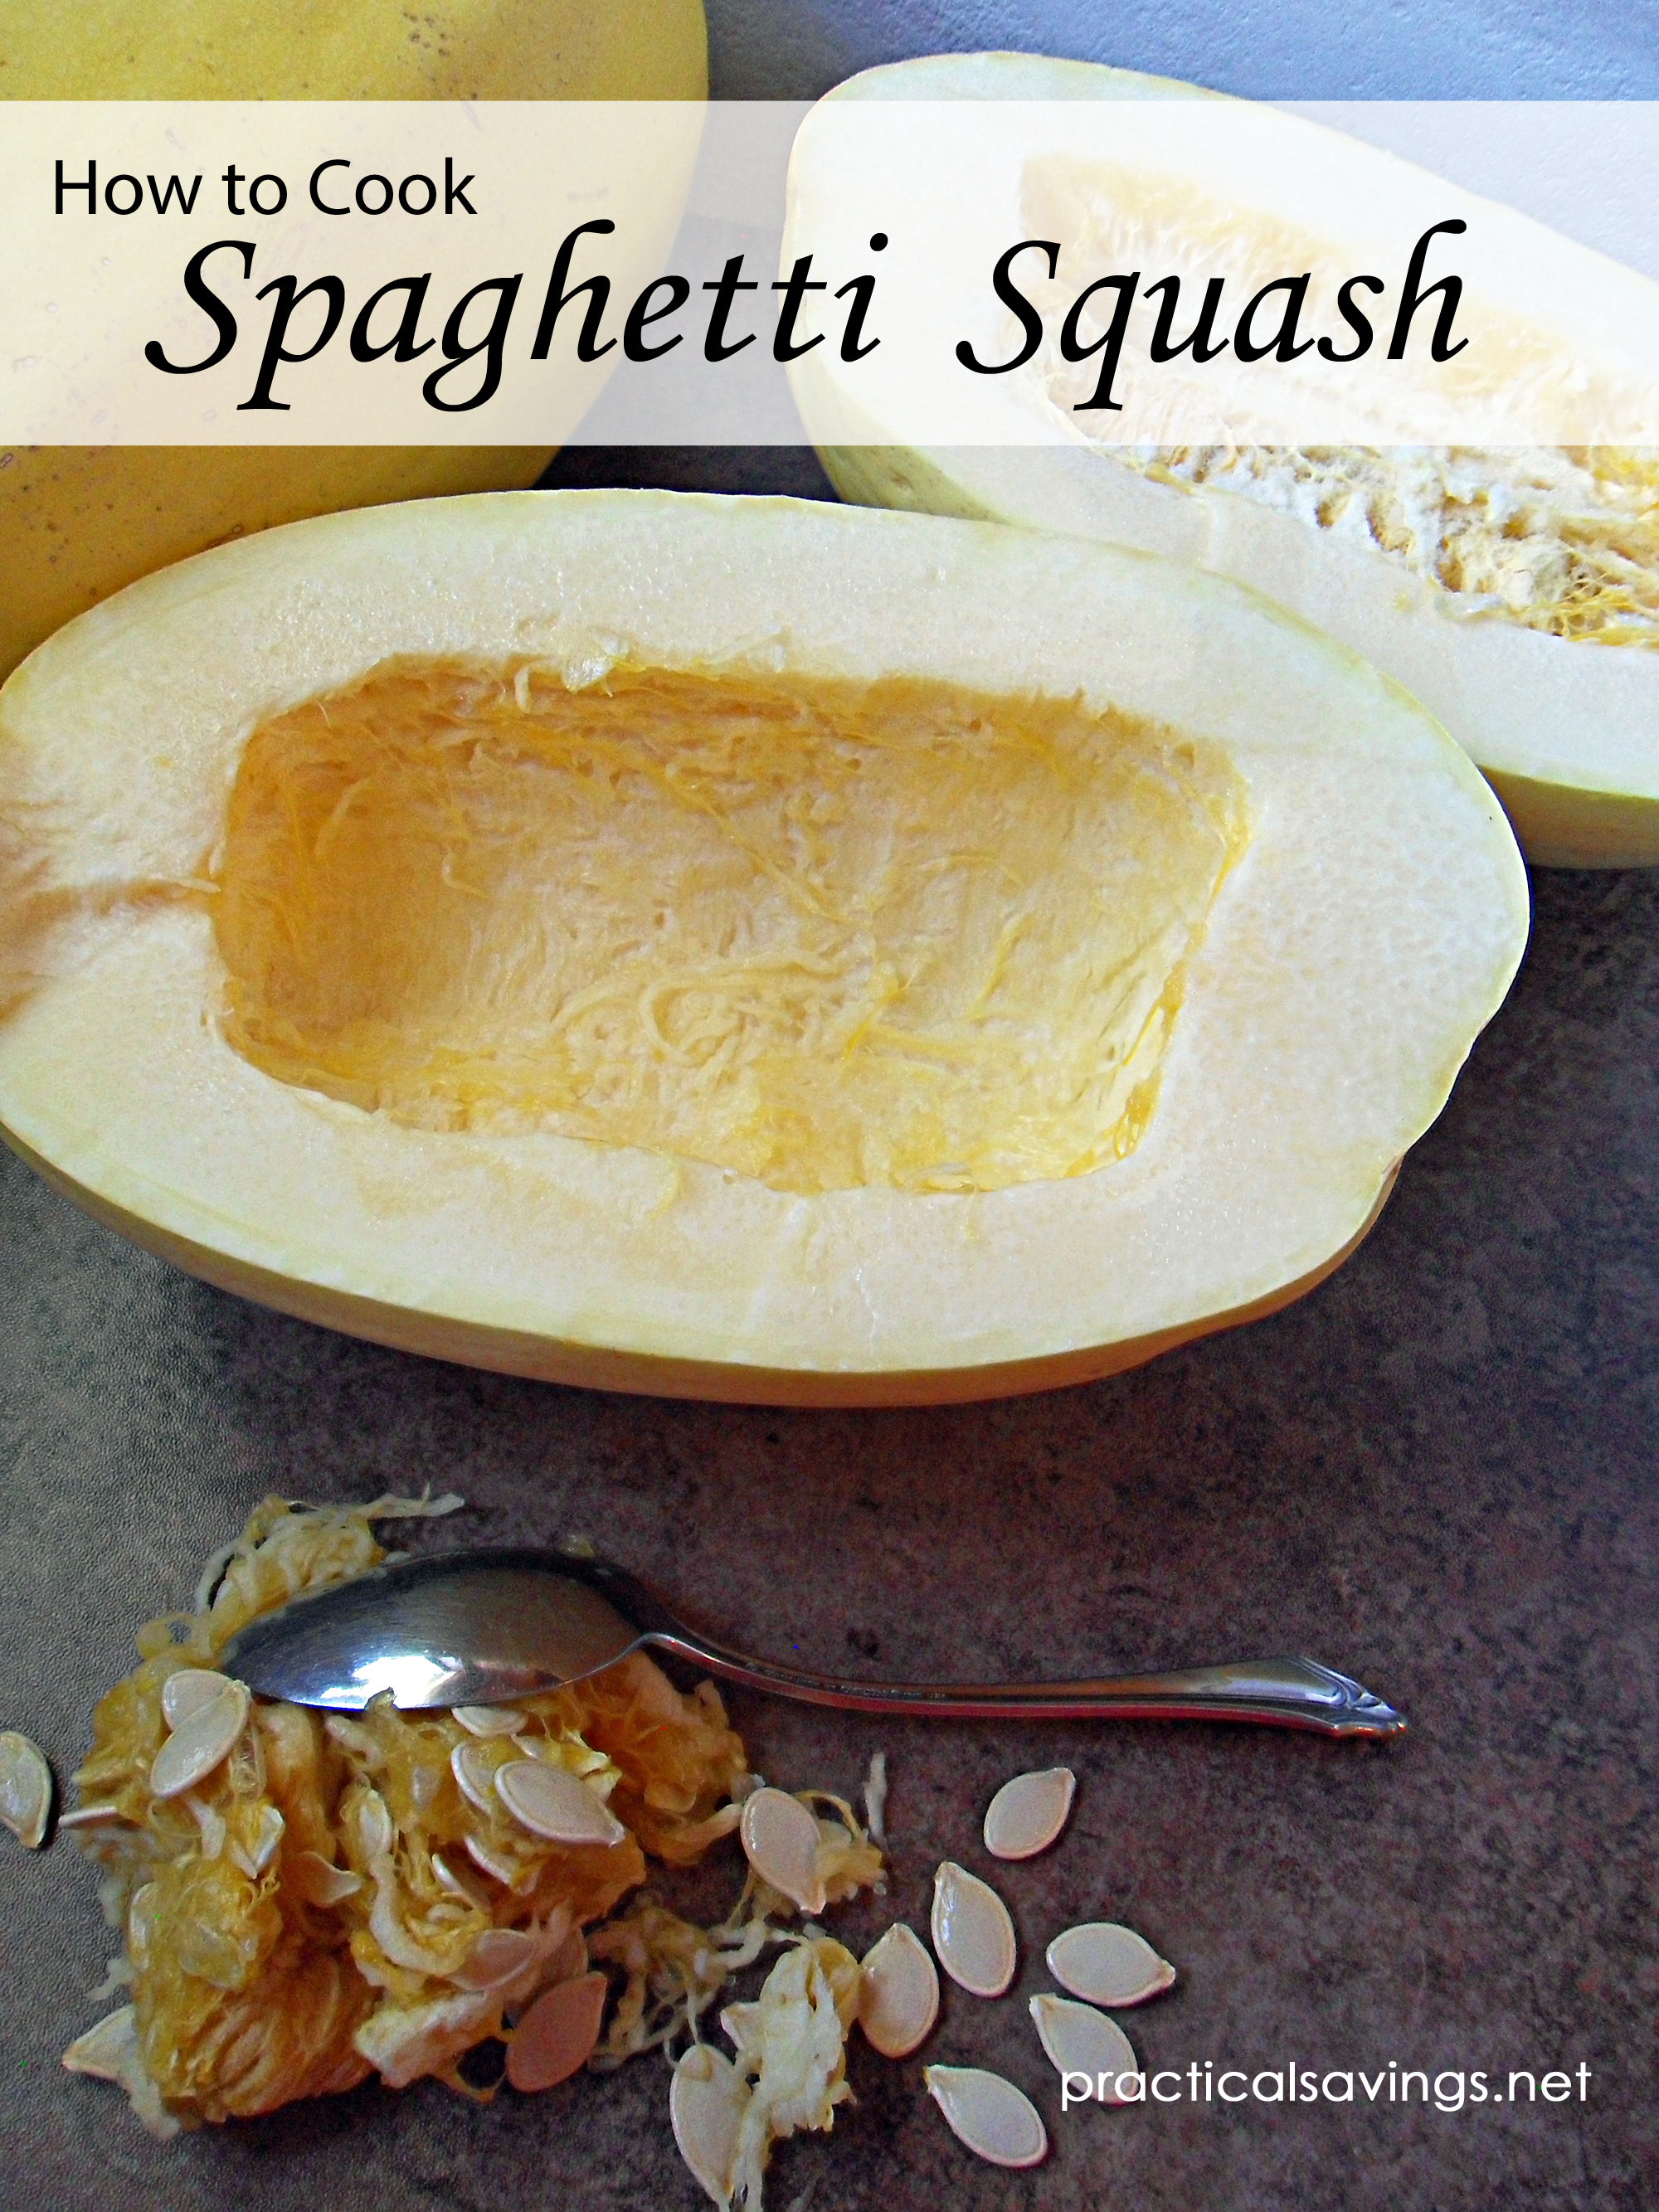 Spaghetti Squash Pinnable